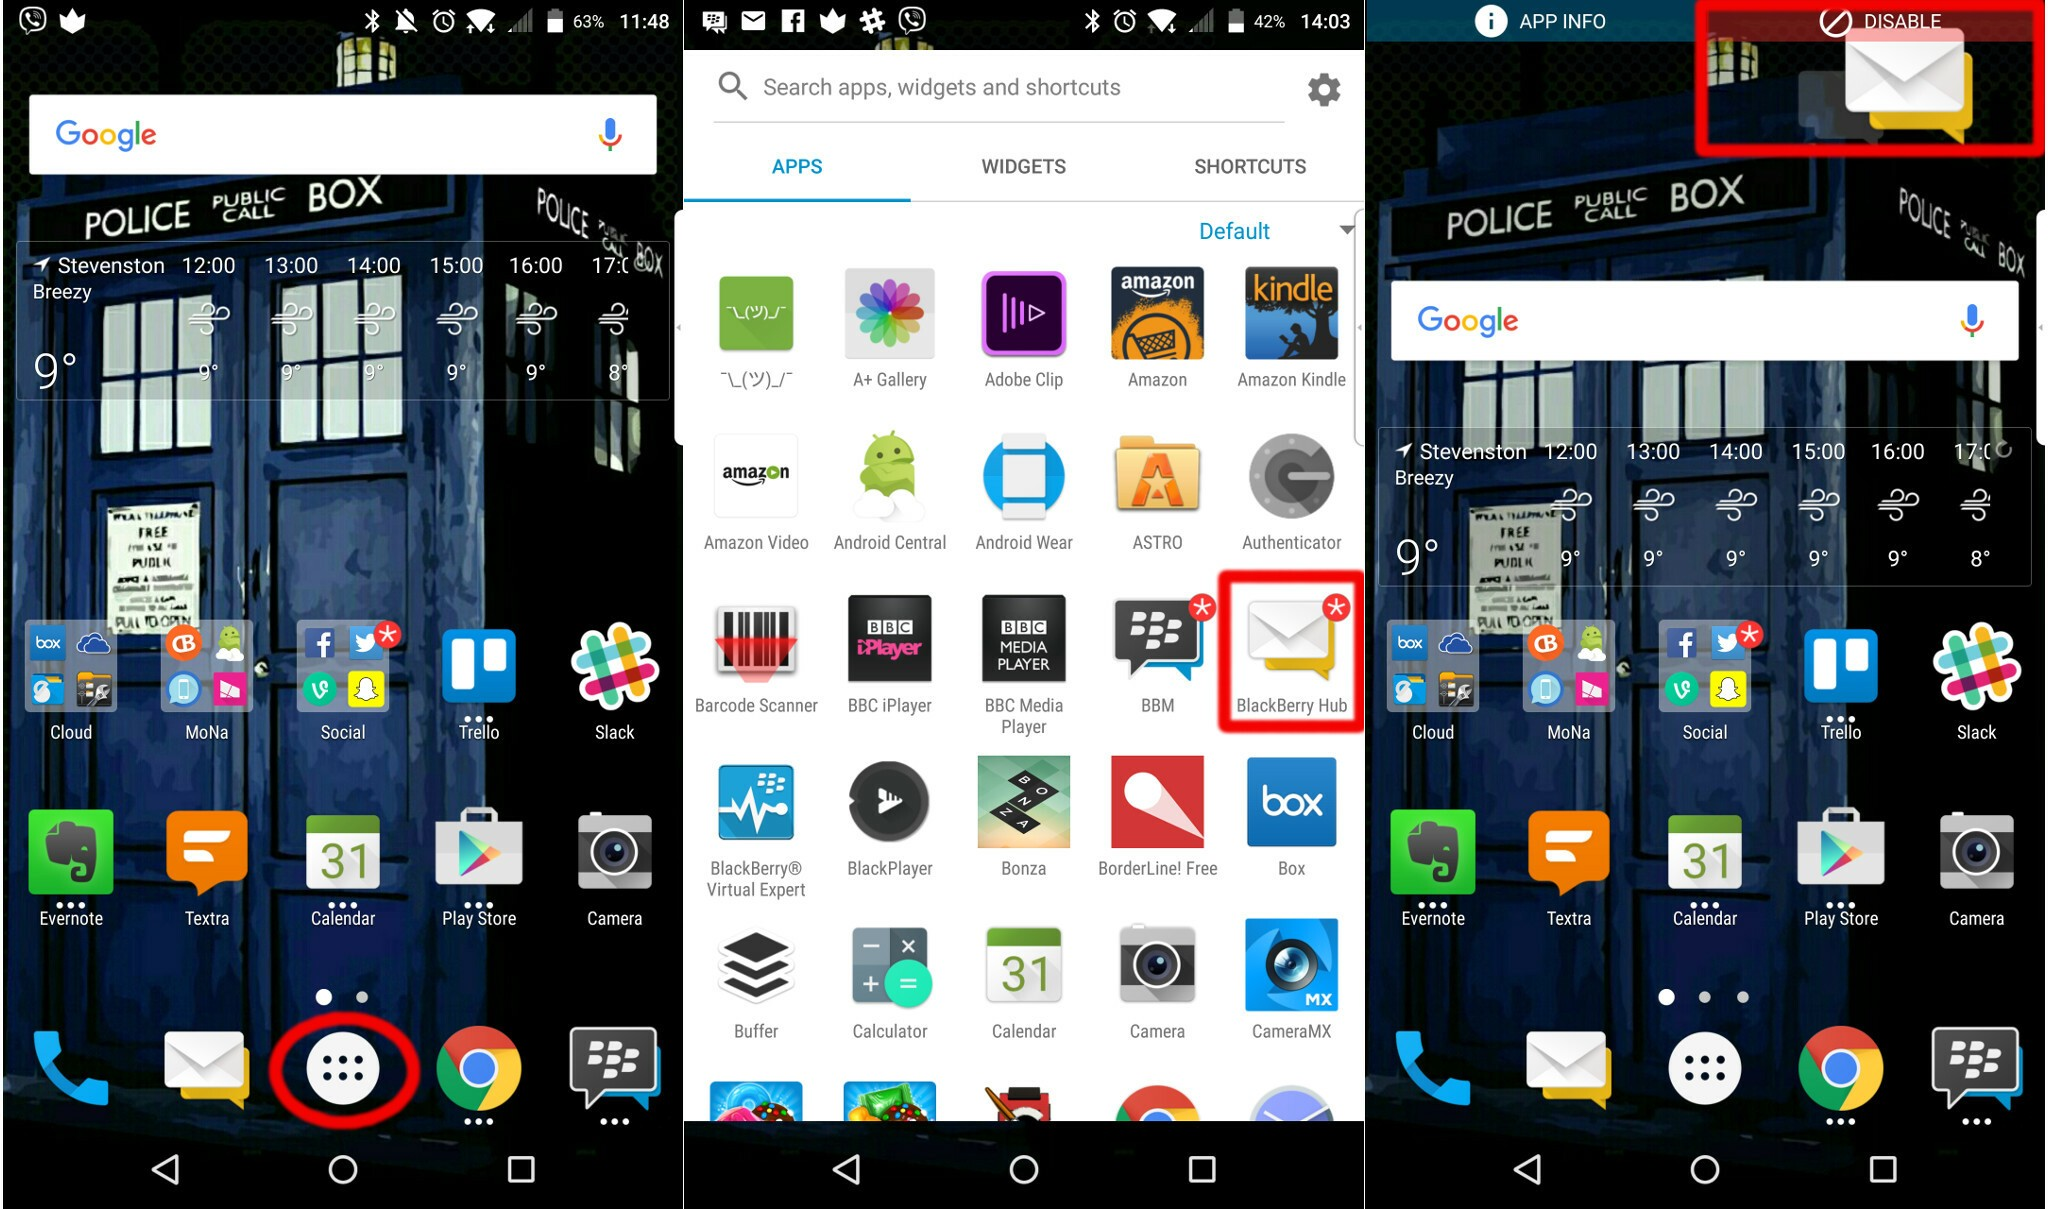 How to disable pre-installed apps and delete downloaded apps on the